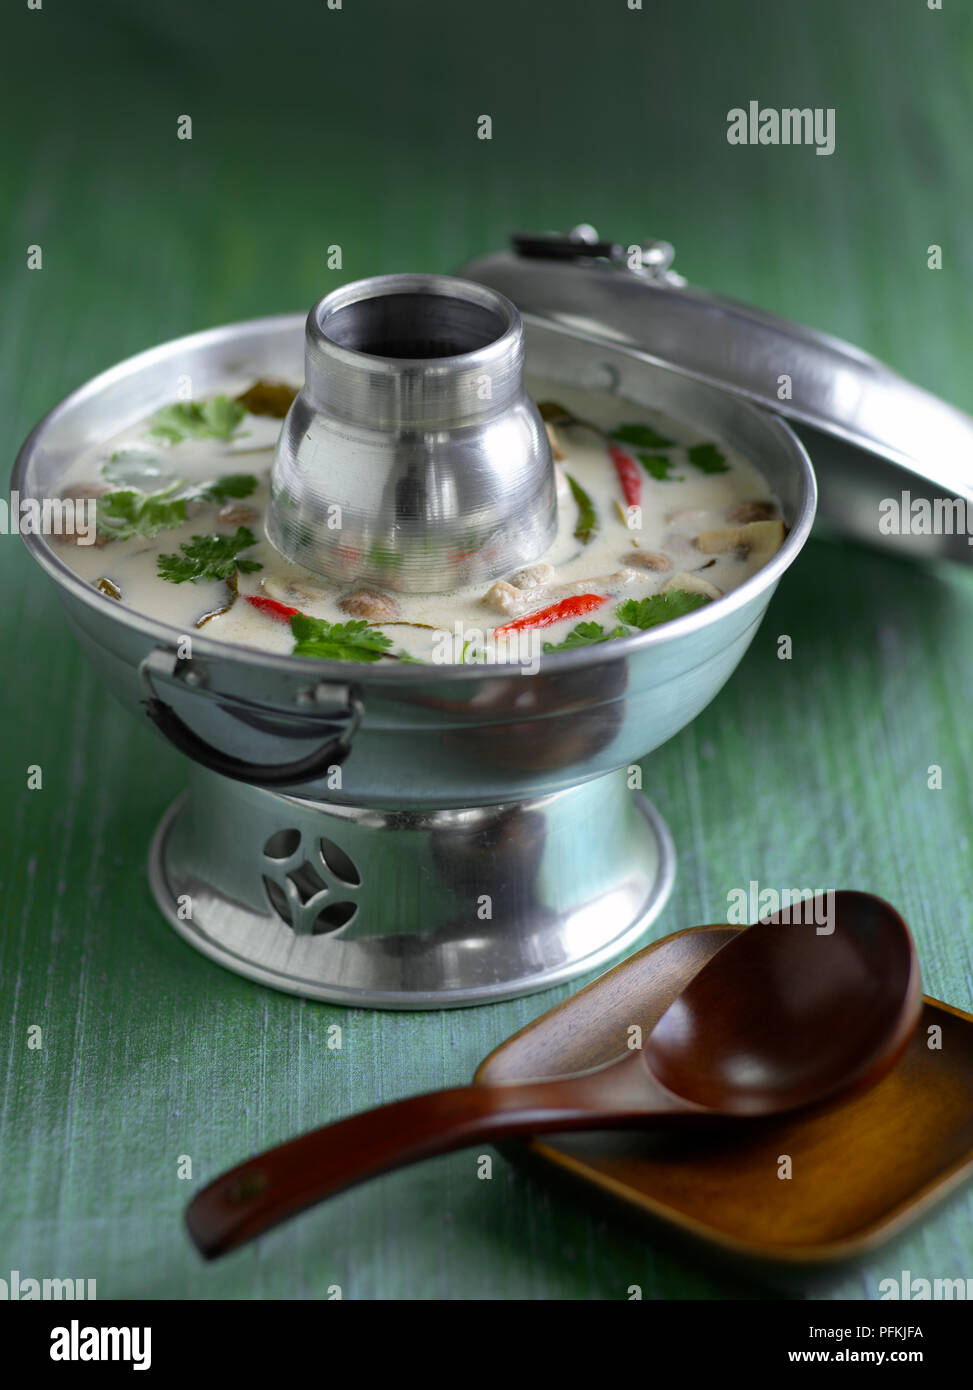 Tom Kha Gai Spicy Chicken And Coconut Soup In Thai Hot Pot Serving Bowl Spoon Nearby Stock Photo Alamy